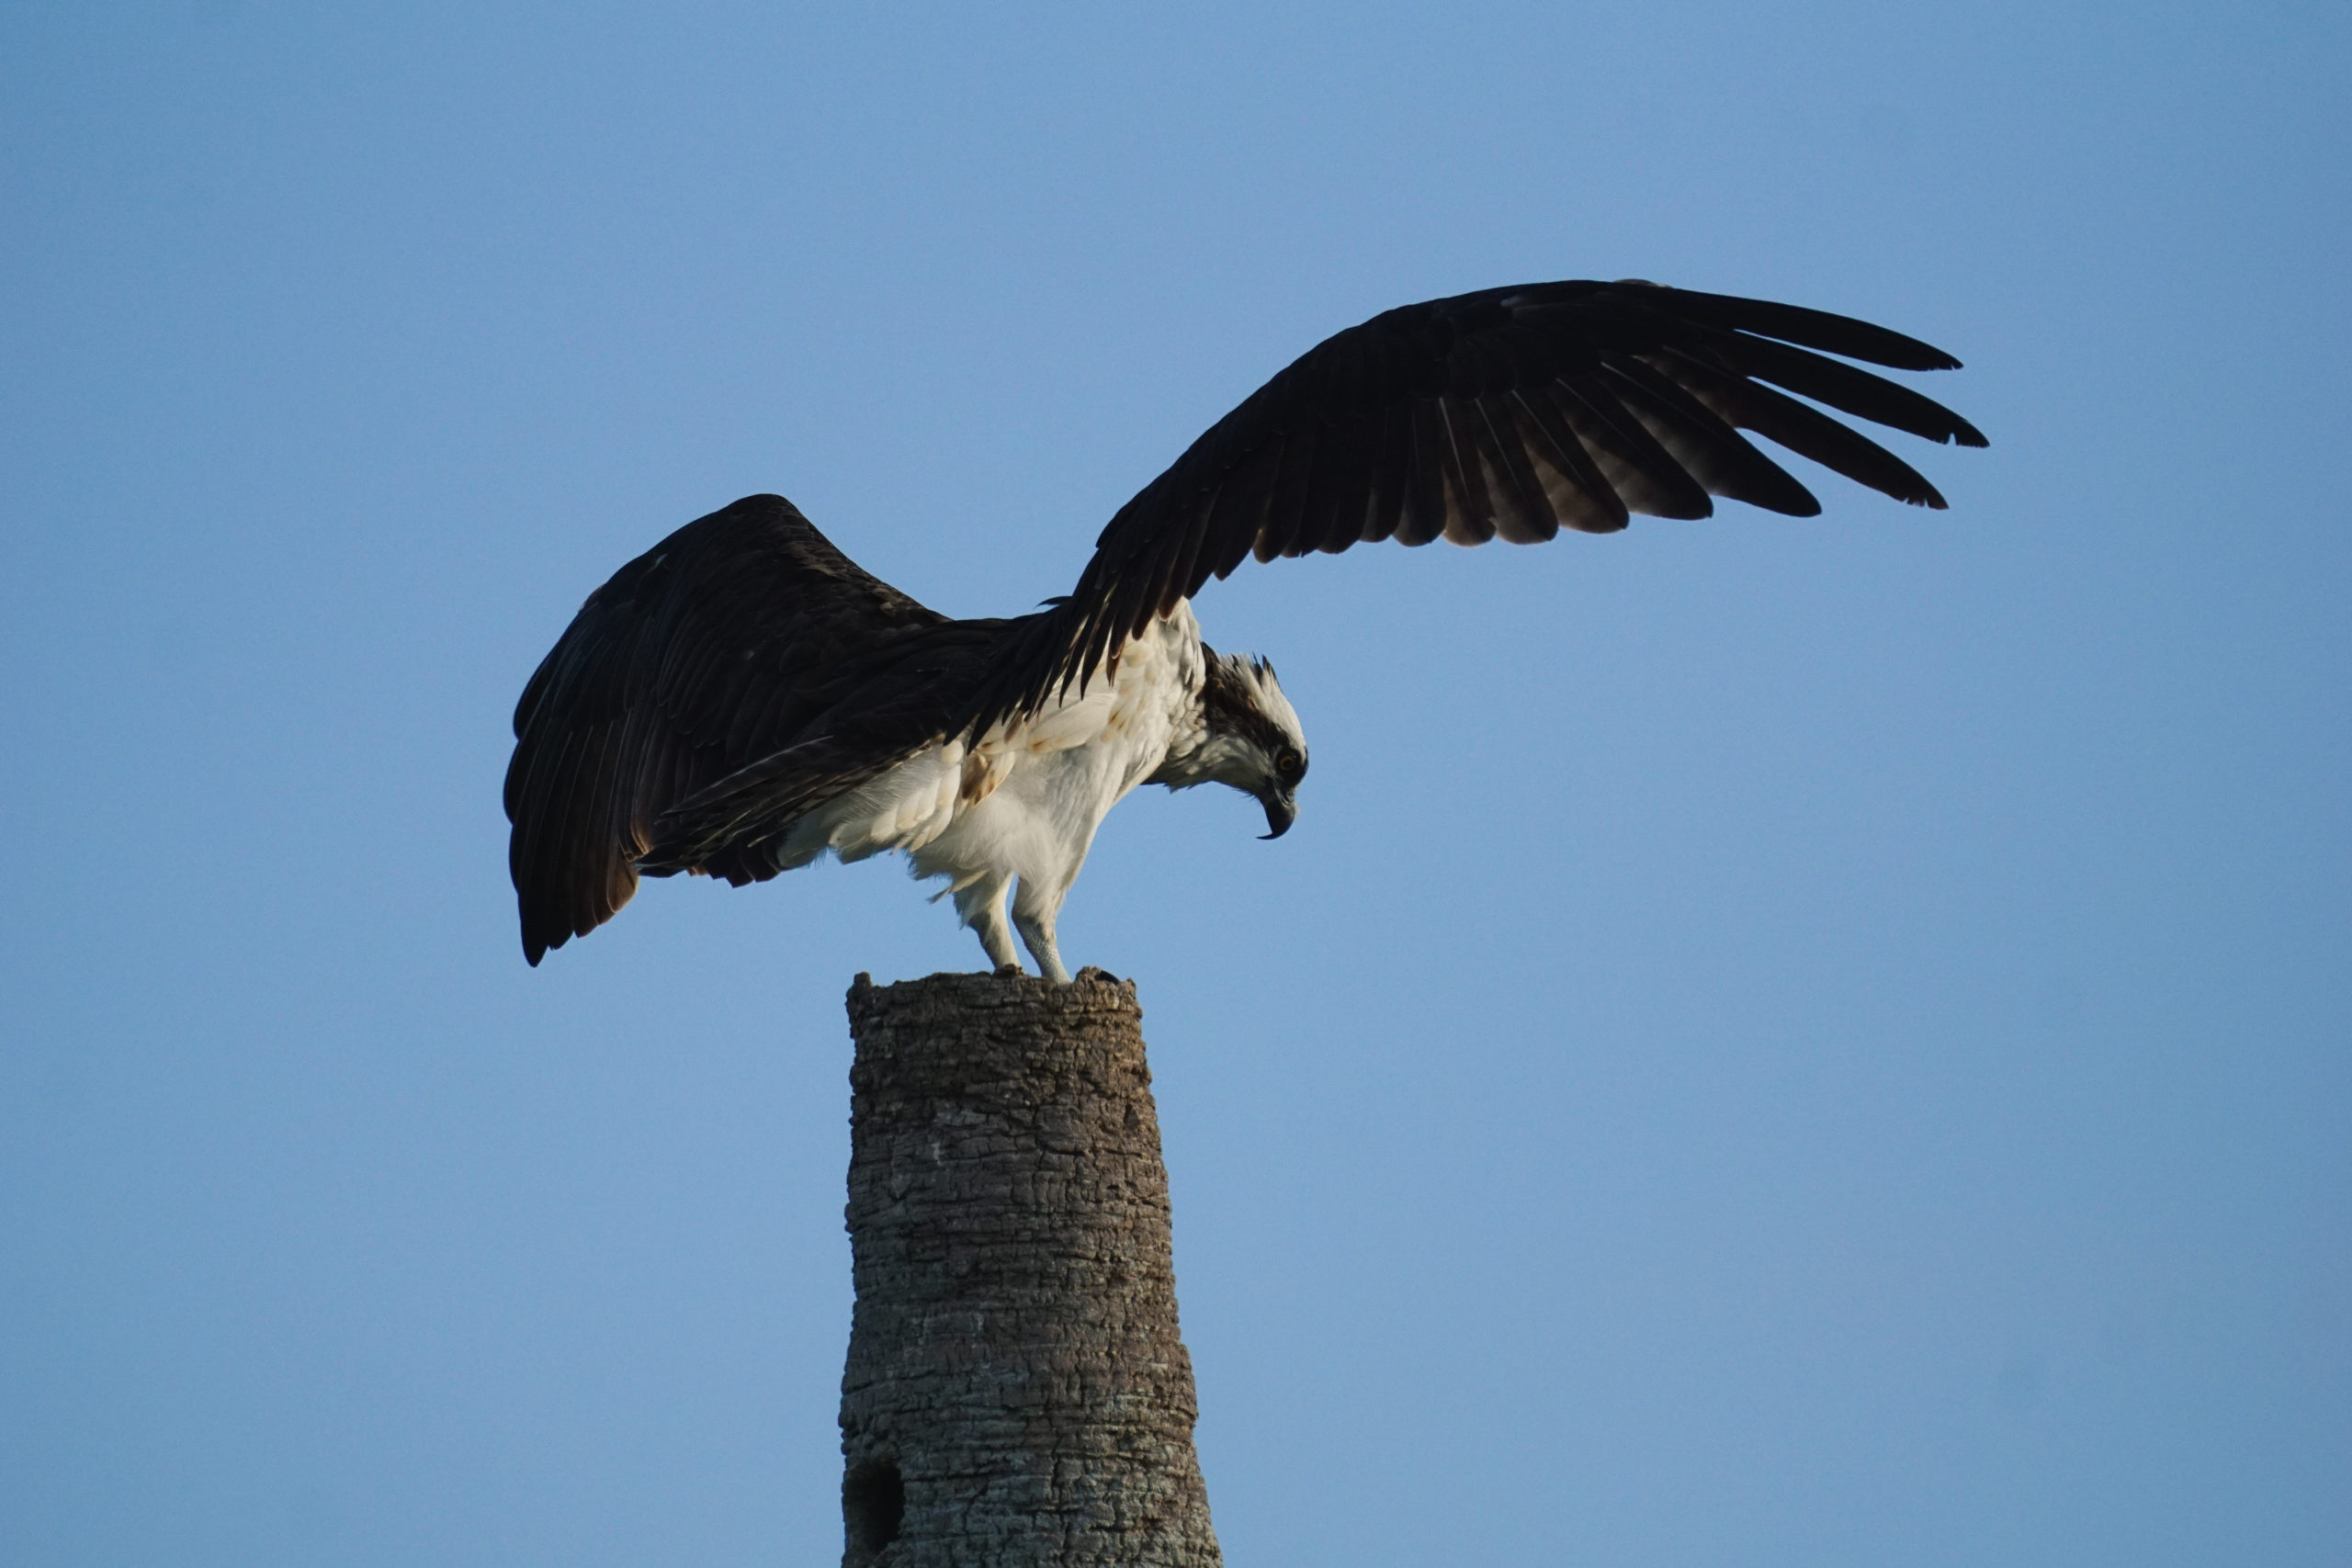 Osprey with wings open